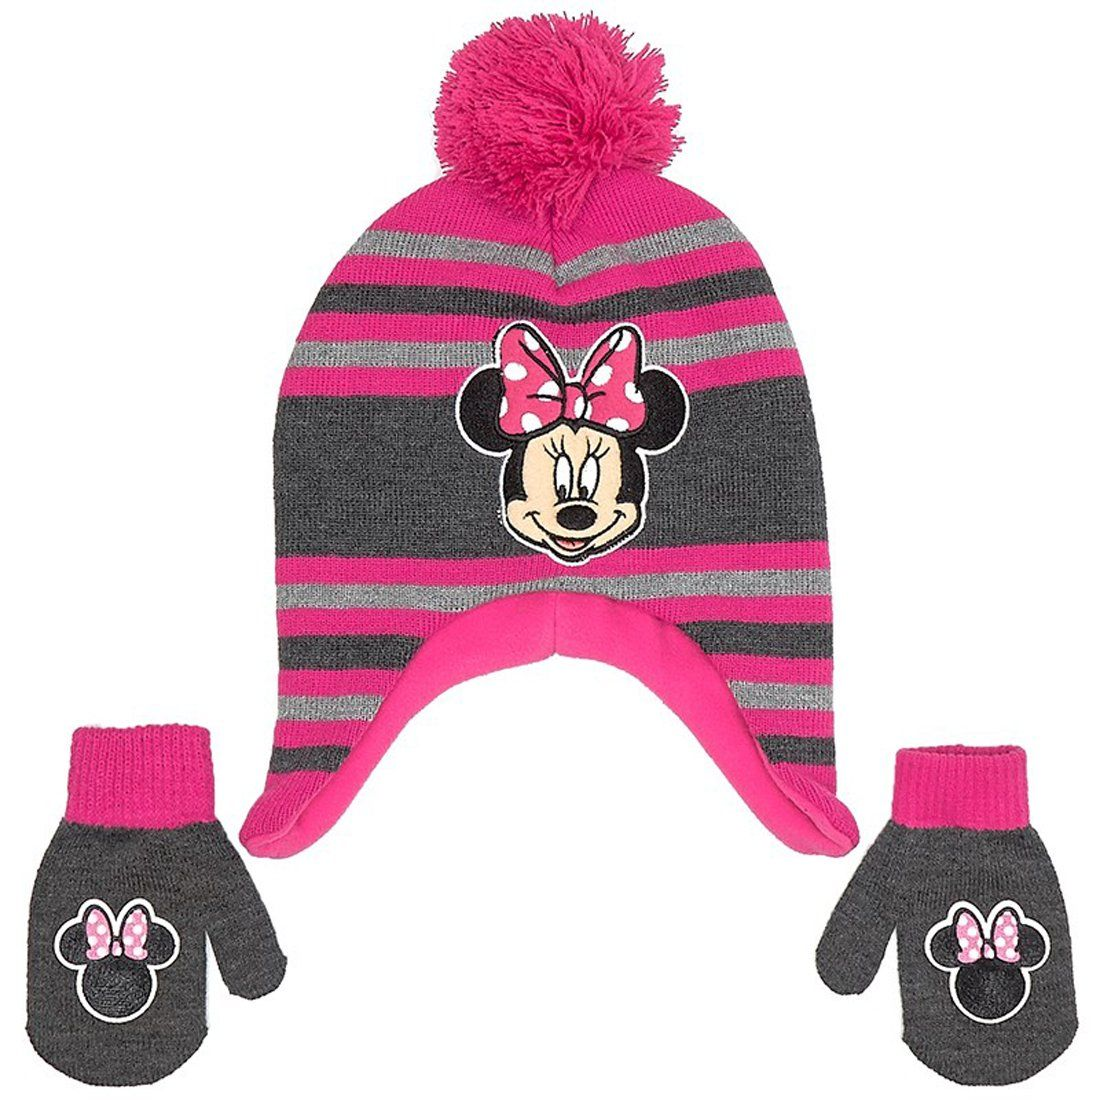 Disney Minnie Mouse Hat and Mittens Cold Weather Set Toddler Girls